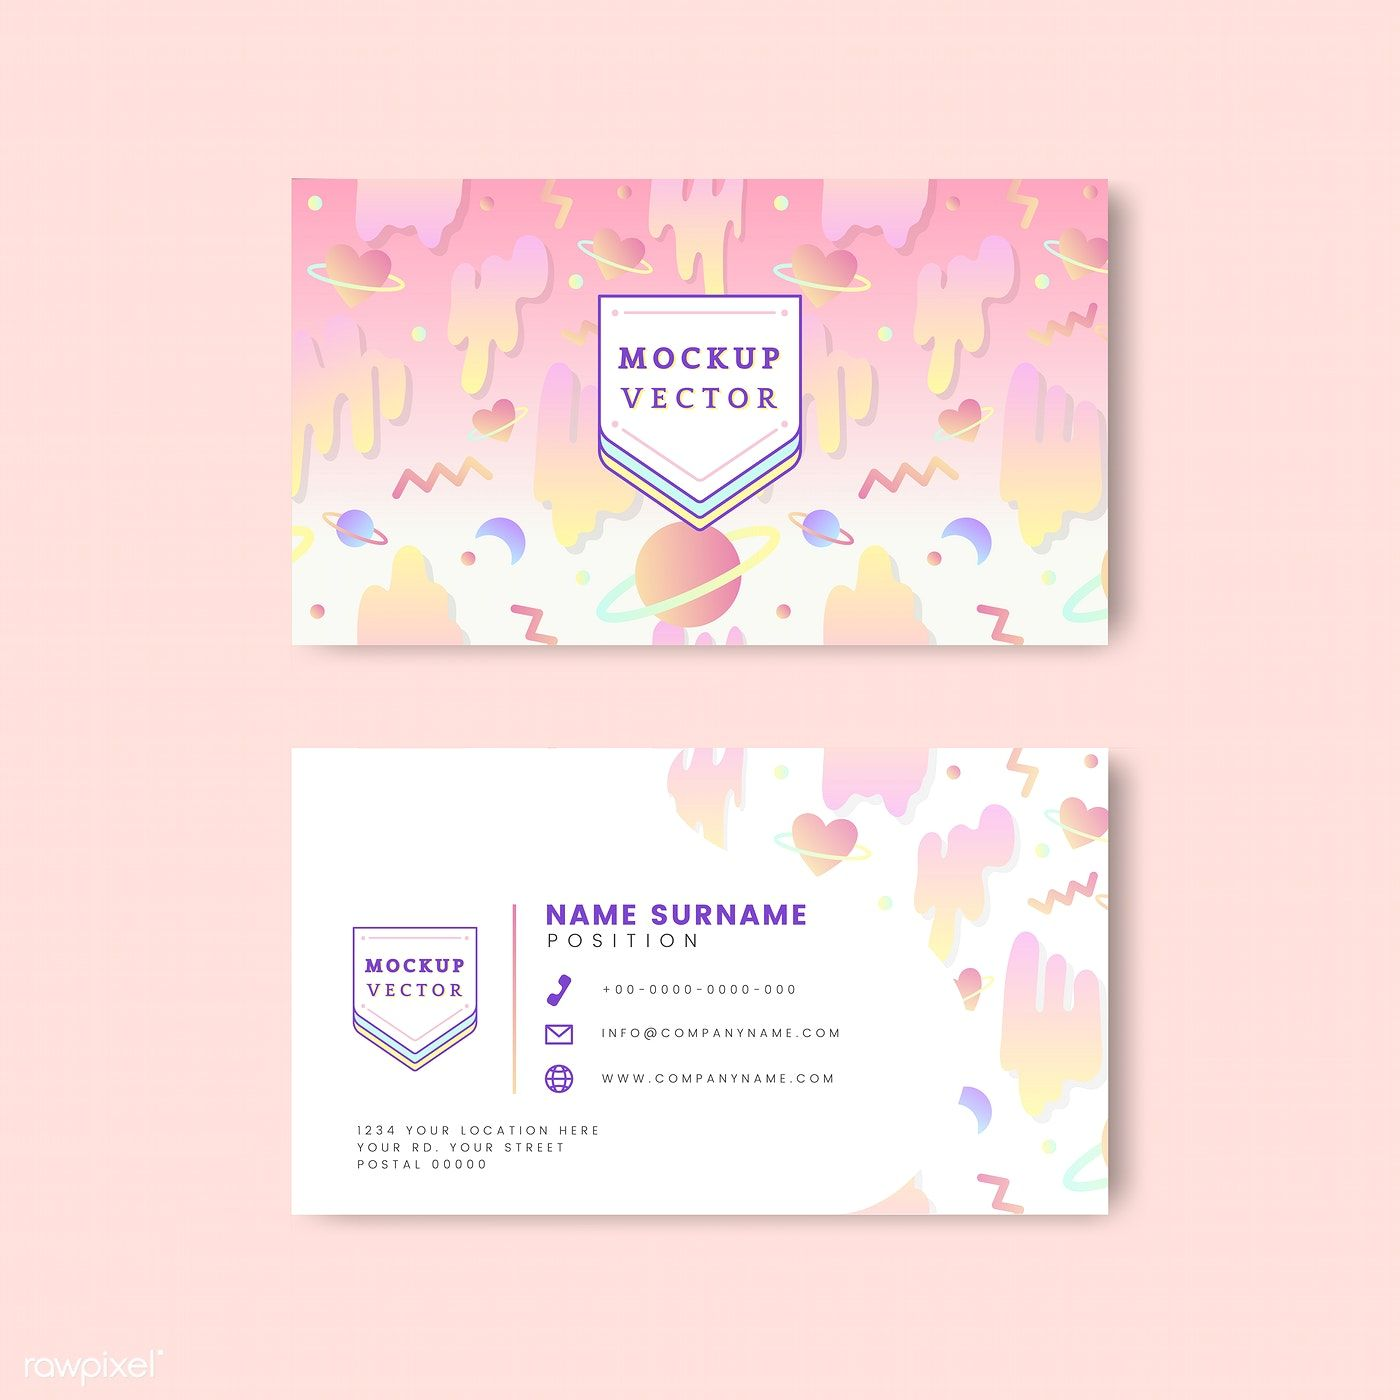 Download Premium Vector Of Pastel Name Card Mockup Vector 513043 Free Business Card Templates Name Card Design Business Card Design Minimal